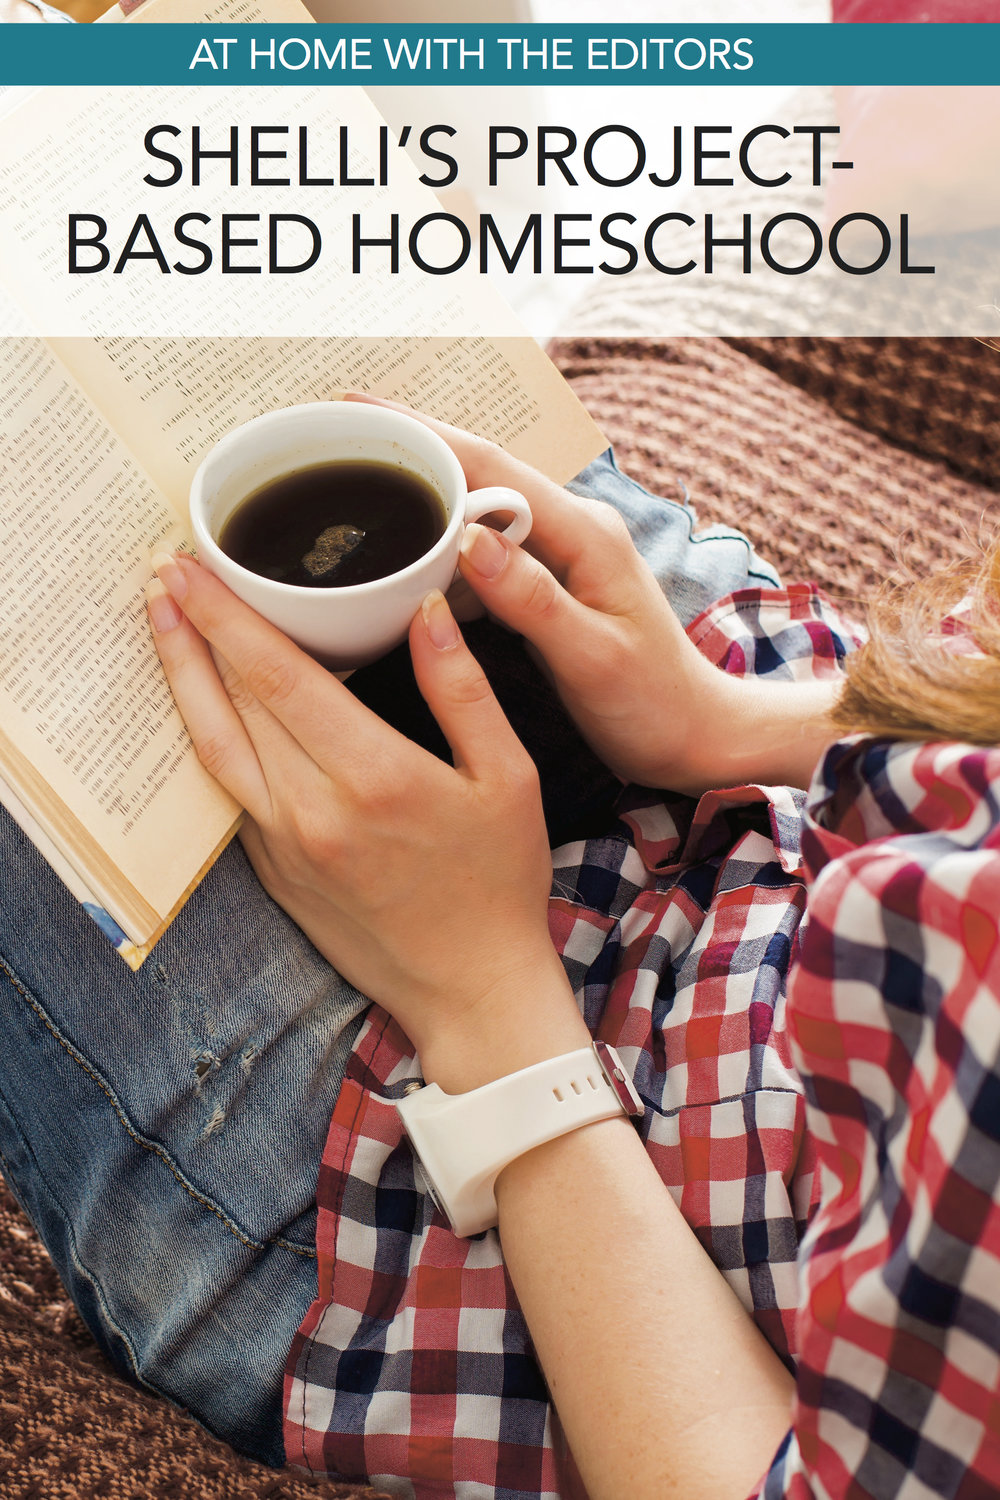 At Home with the Editors: How Project-Based Homeschooling Works for Shelli's Family